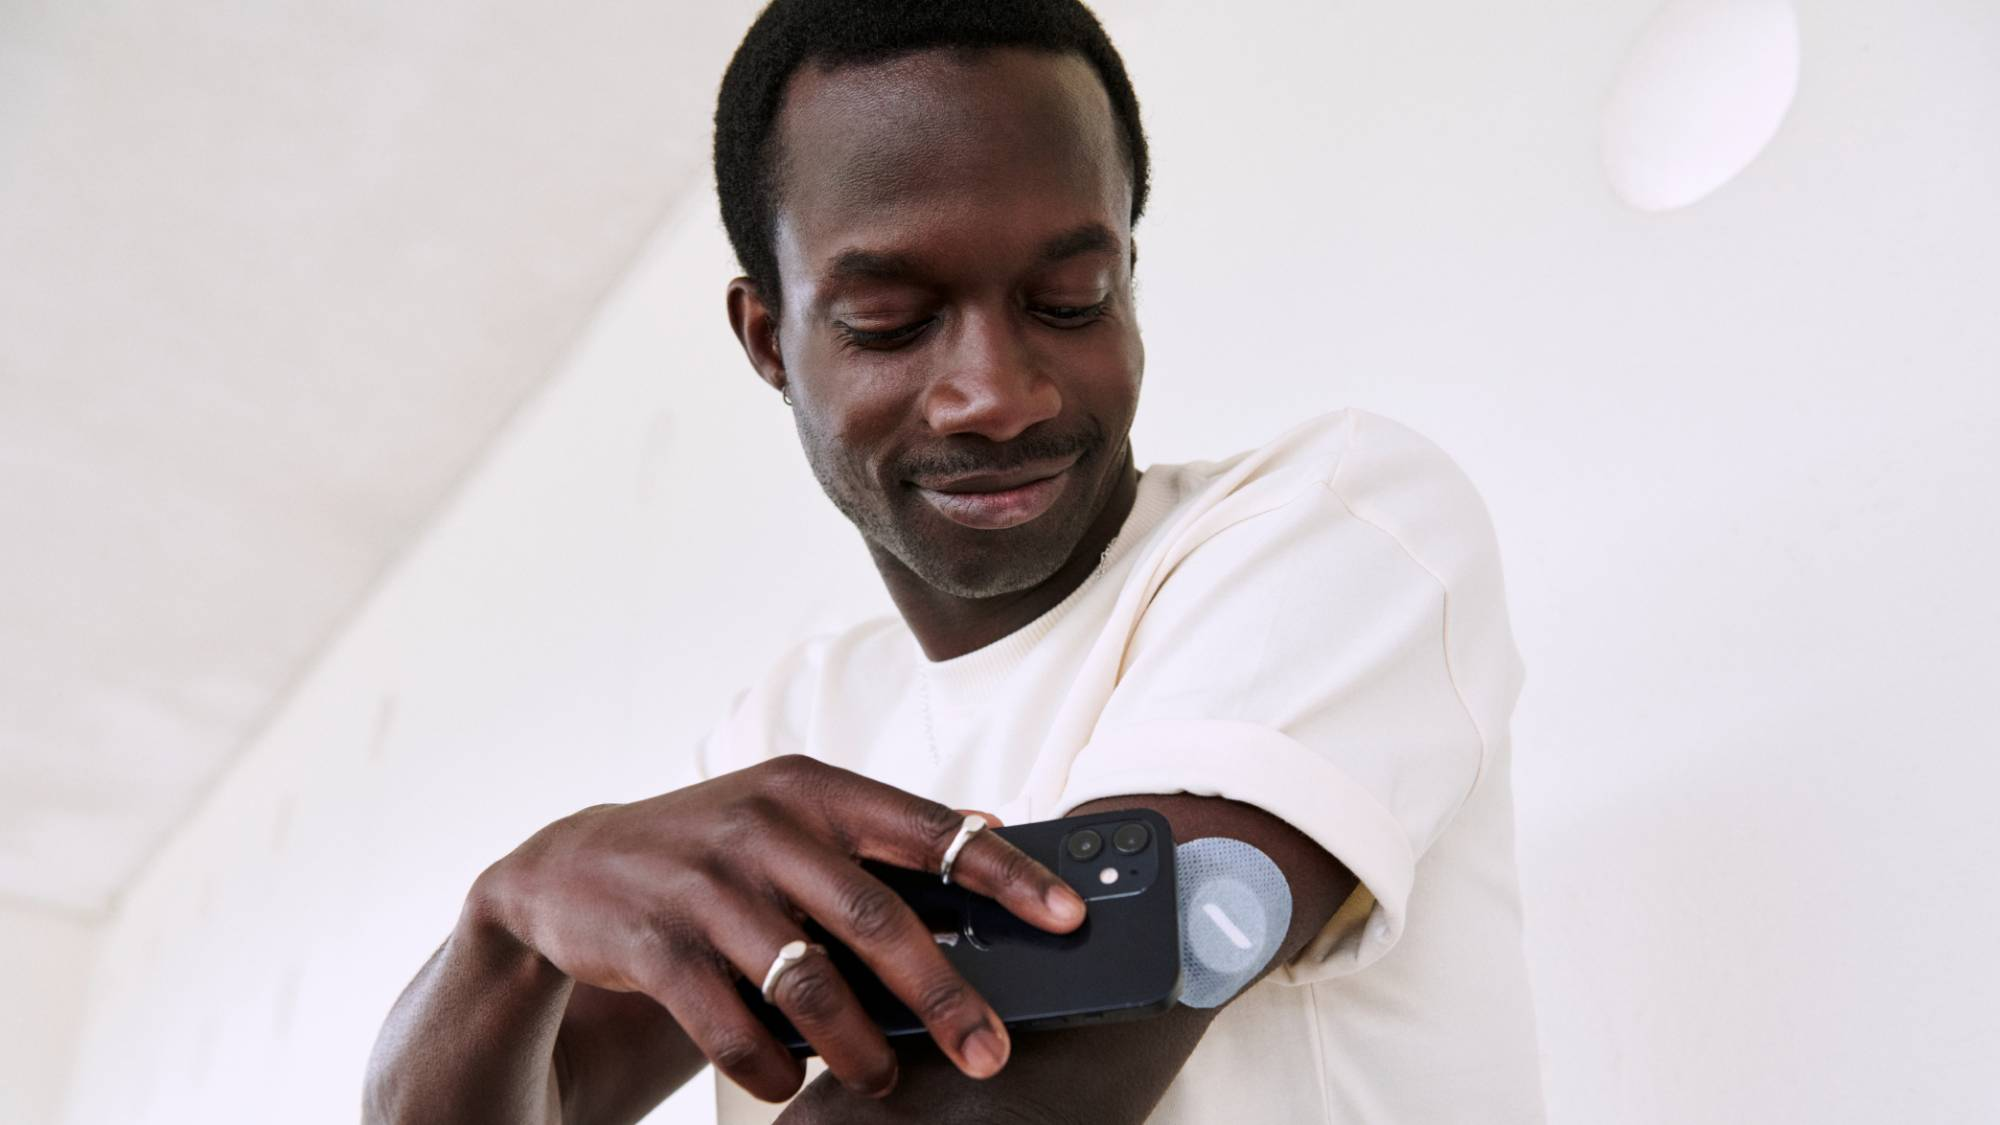 A man scanning a grey patch on his arm with a smartphone.